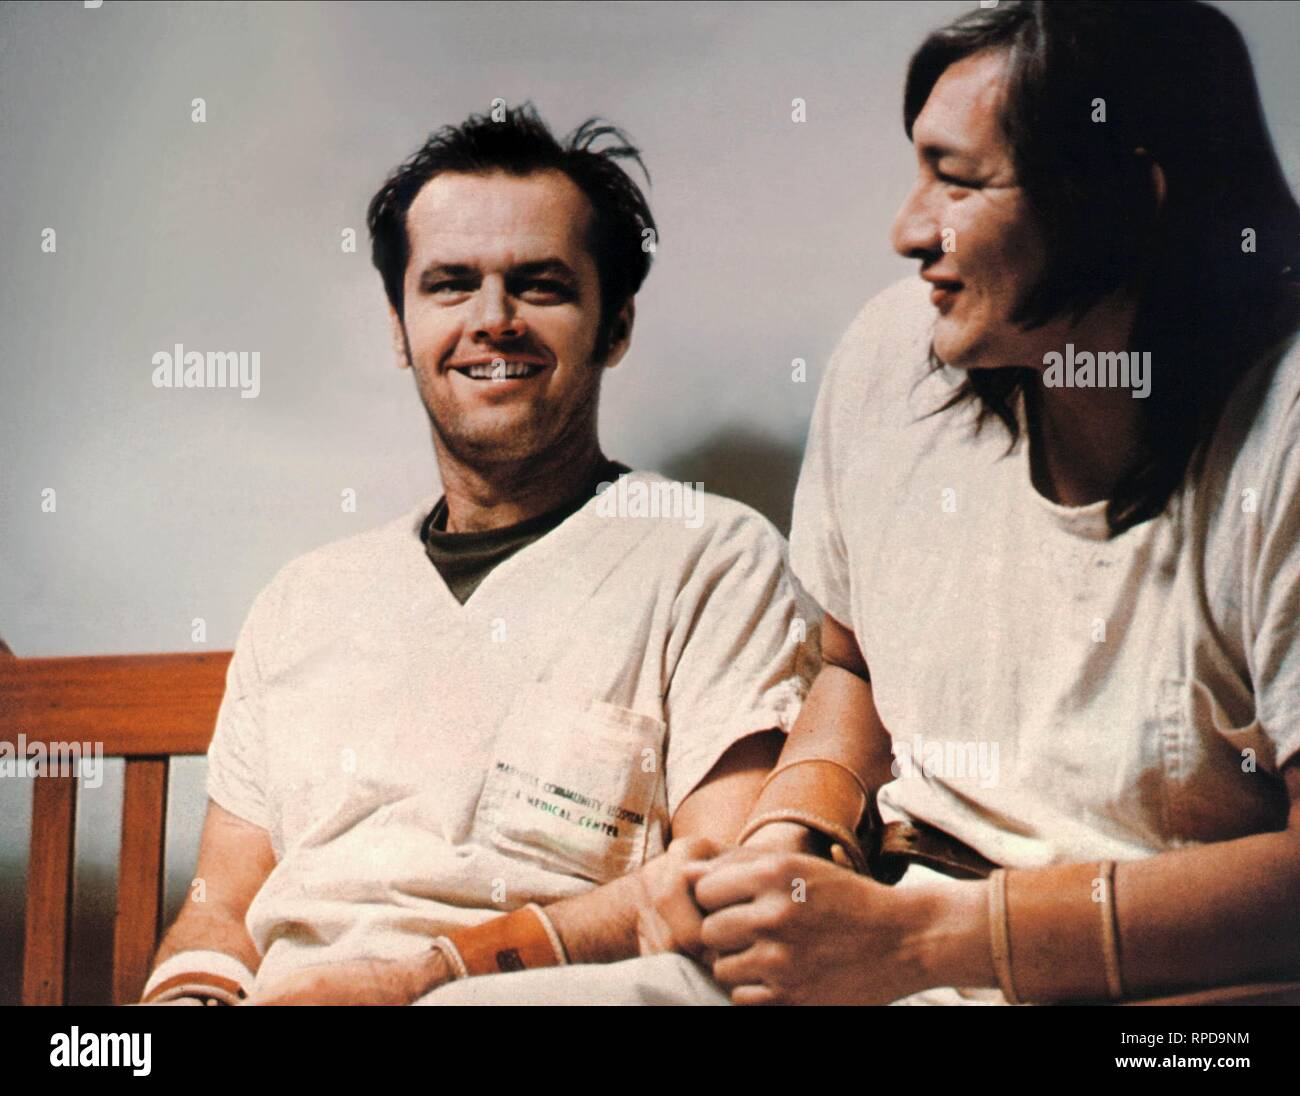 NICHOLSON,SAMPSON, ONE FLEW OVER THE CUCKOO'S NEST, 1975 - Stock Image